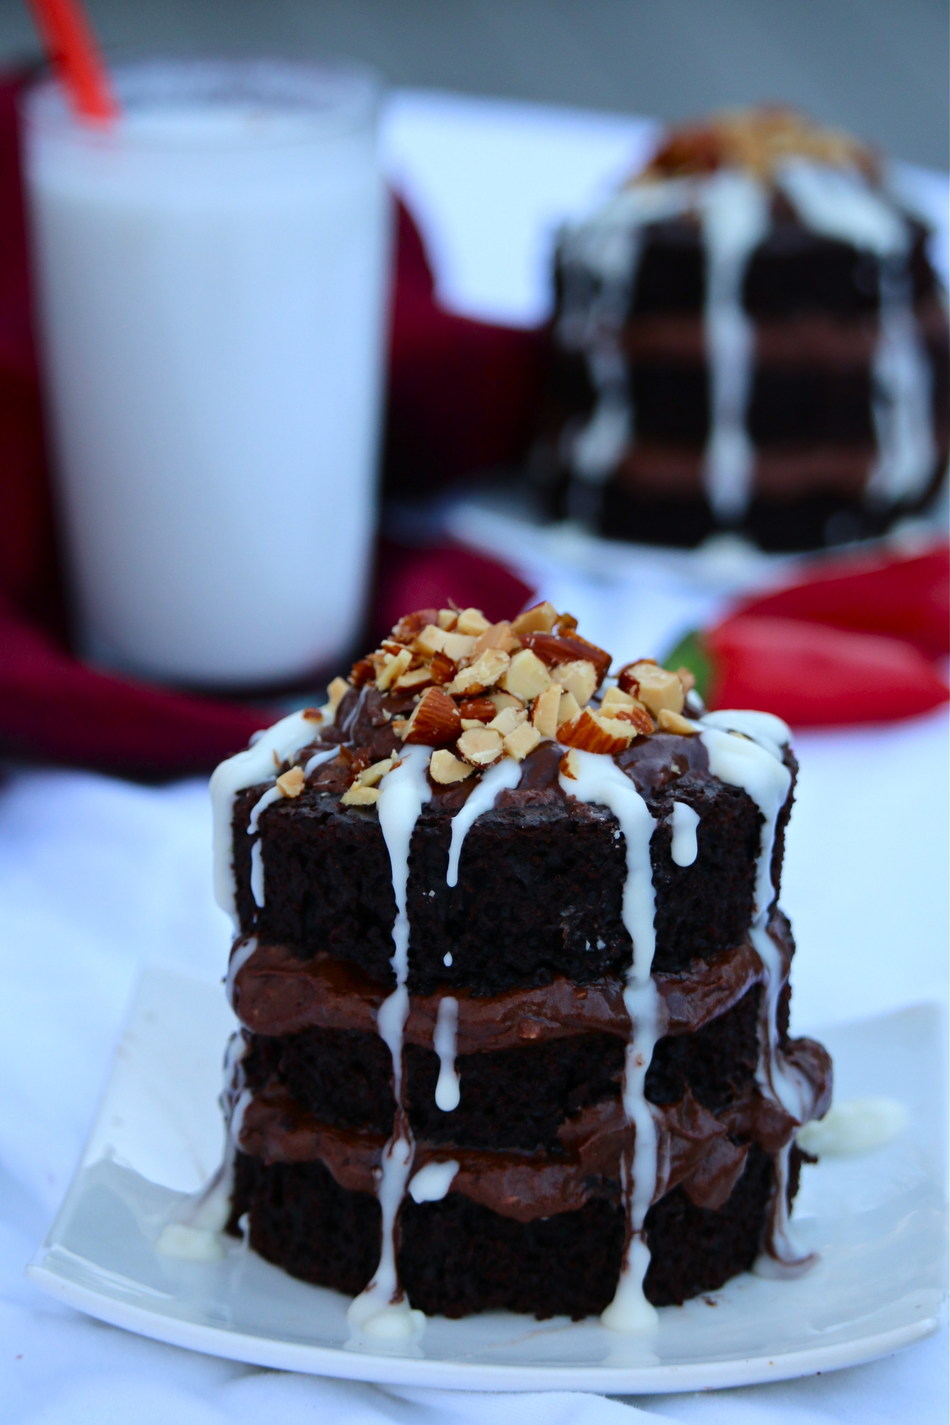 Smoky Chili Chocolate Cake with Chocolate Kahlua Milk Frosting & Vanilla Milk Drizzle created by Merry Graham from Newhall, CA. Photo credit: Merry Graham